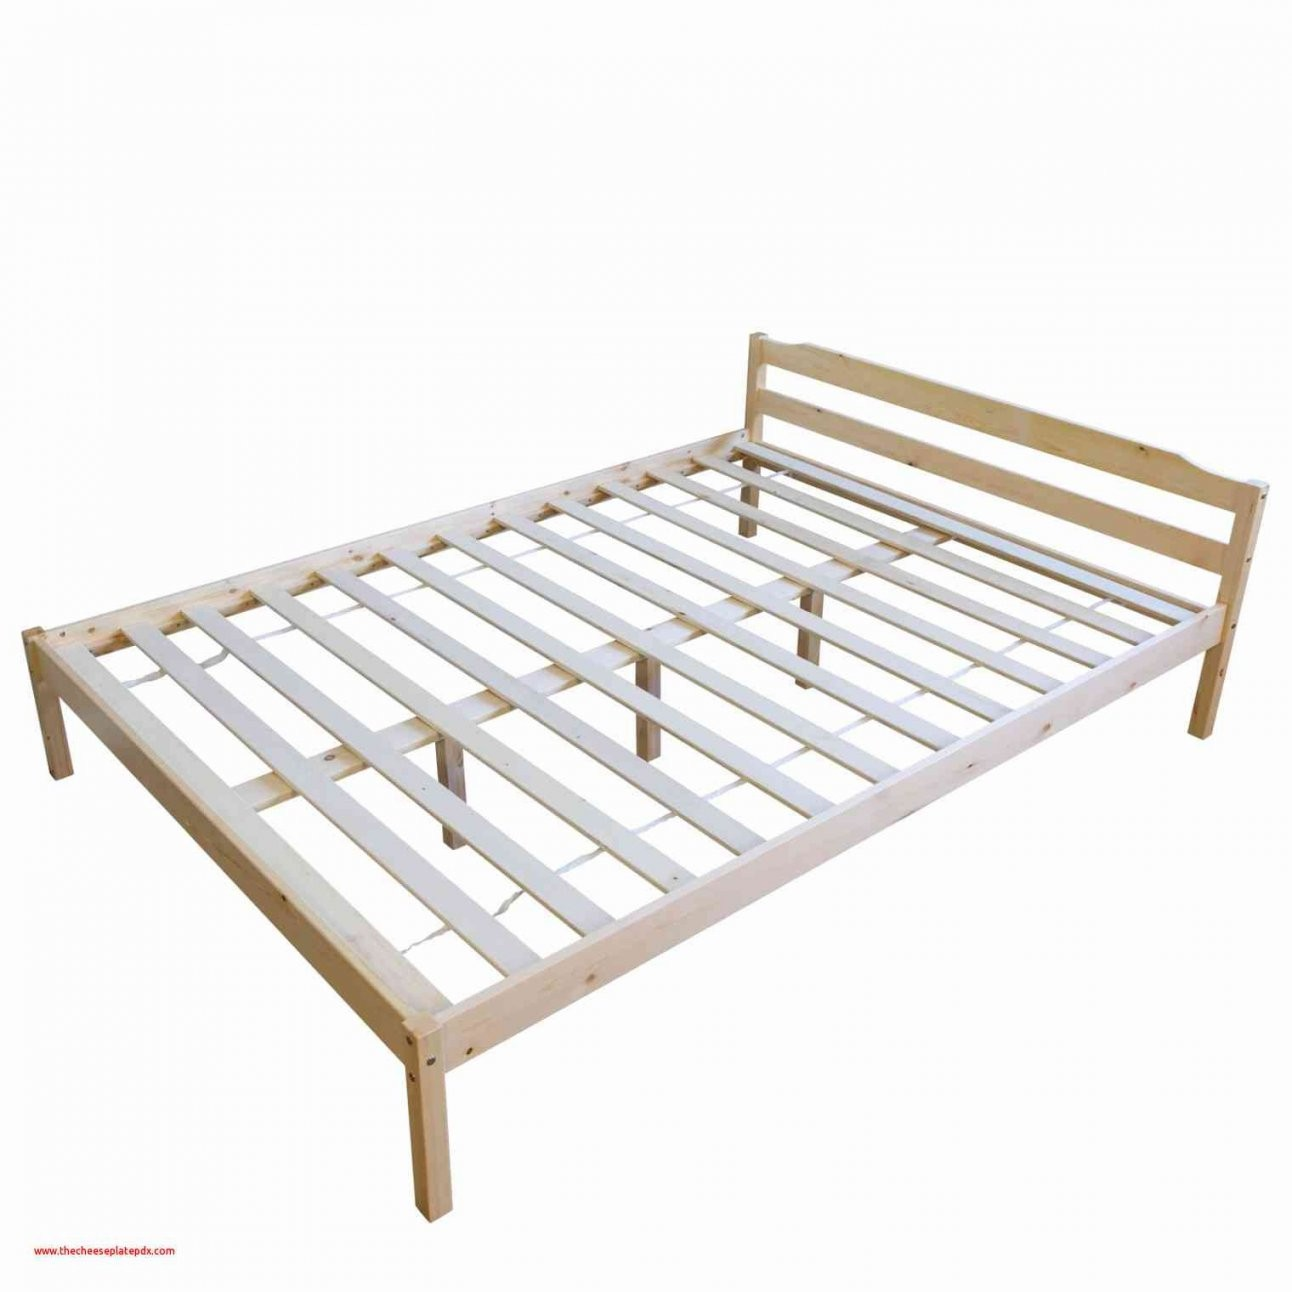 Ikea Malm Bett 140×200 Von To Bett 160×200 Ikea It S  Avaformalwear von Ikea Malm Bett 160X200 Photo